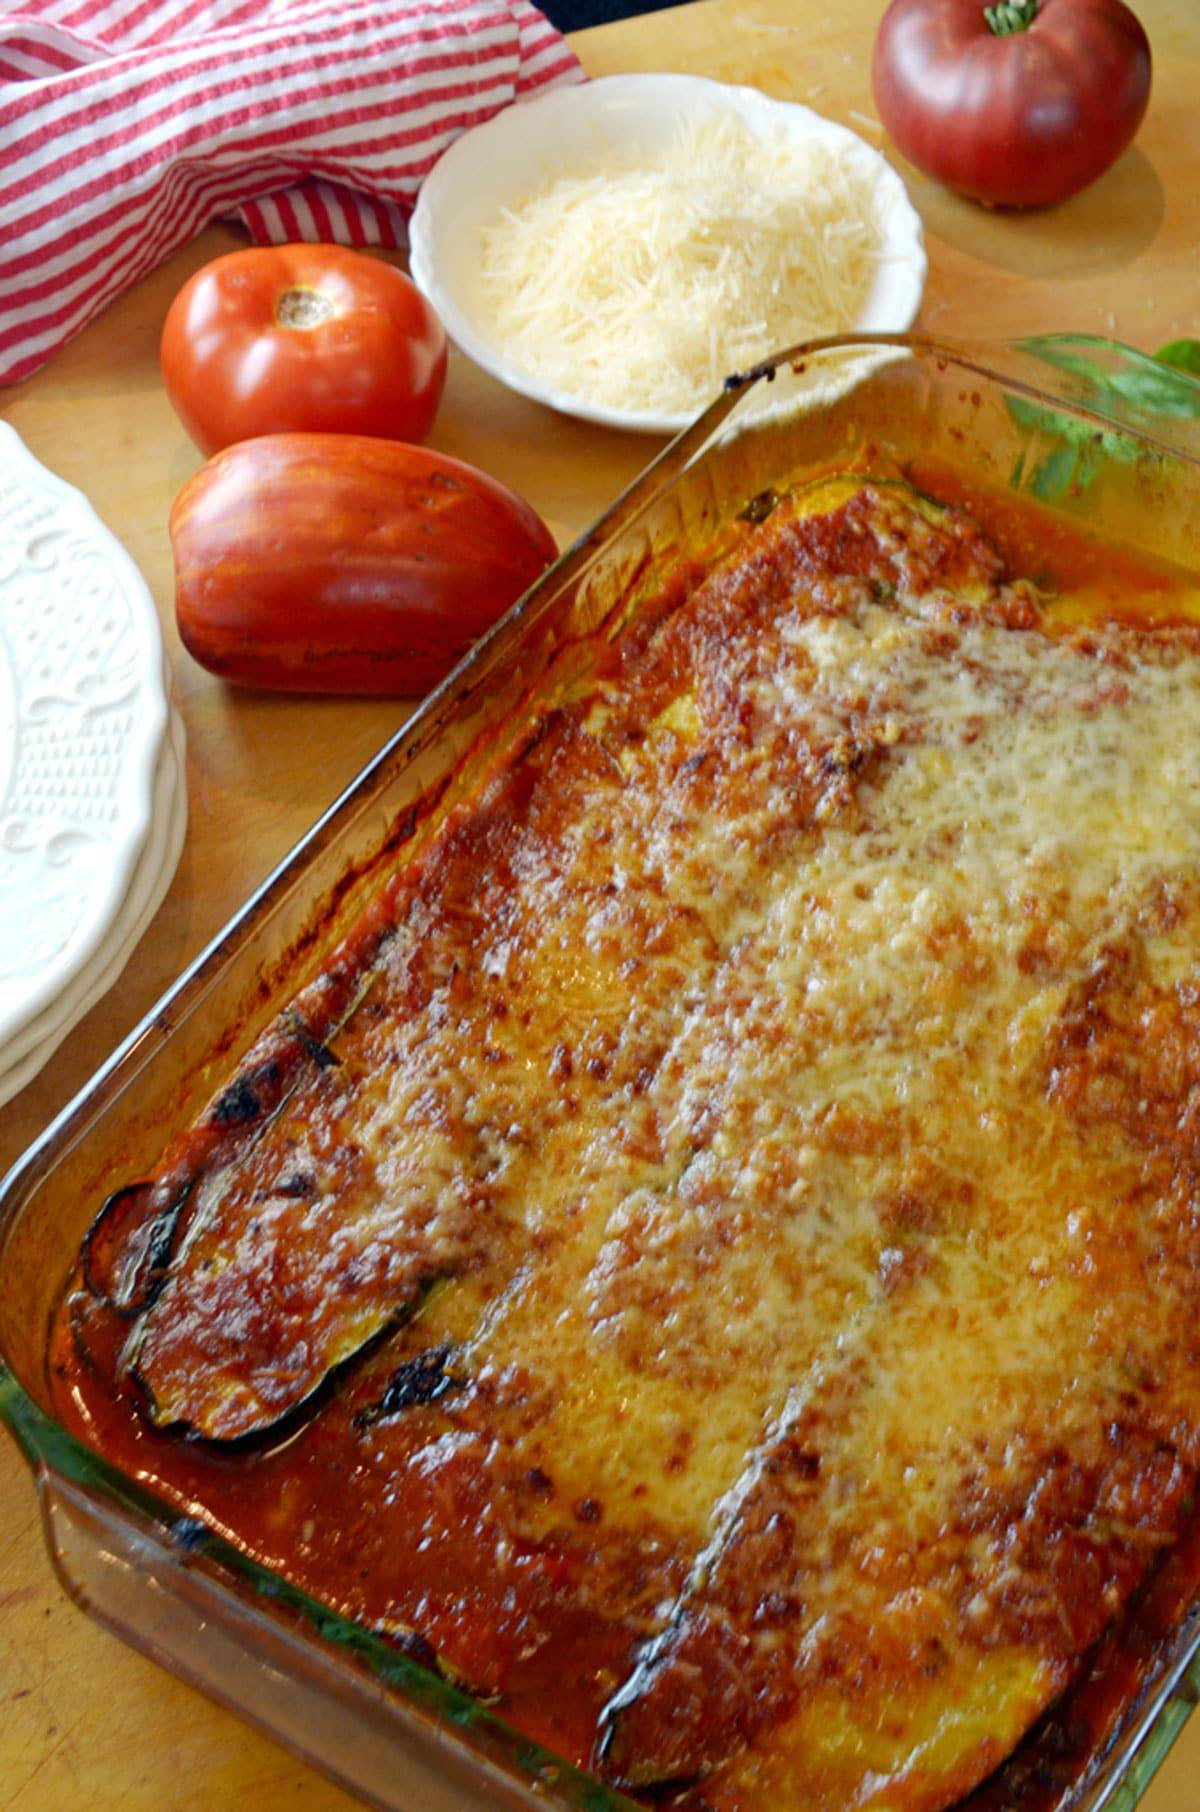 Casserole dish of baked zucchini with parmesan cheese